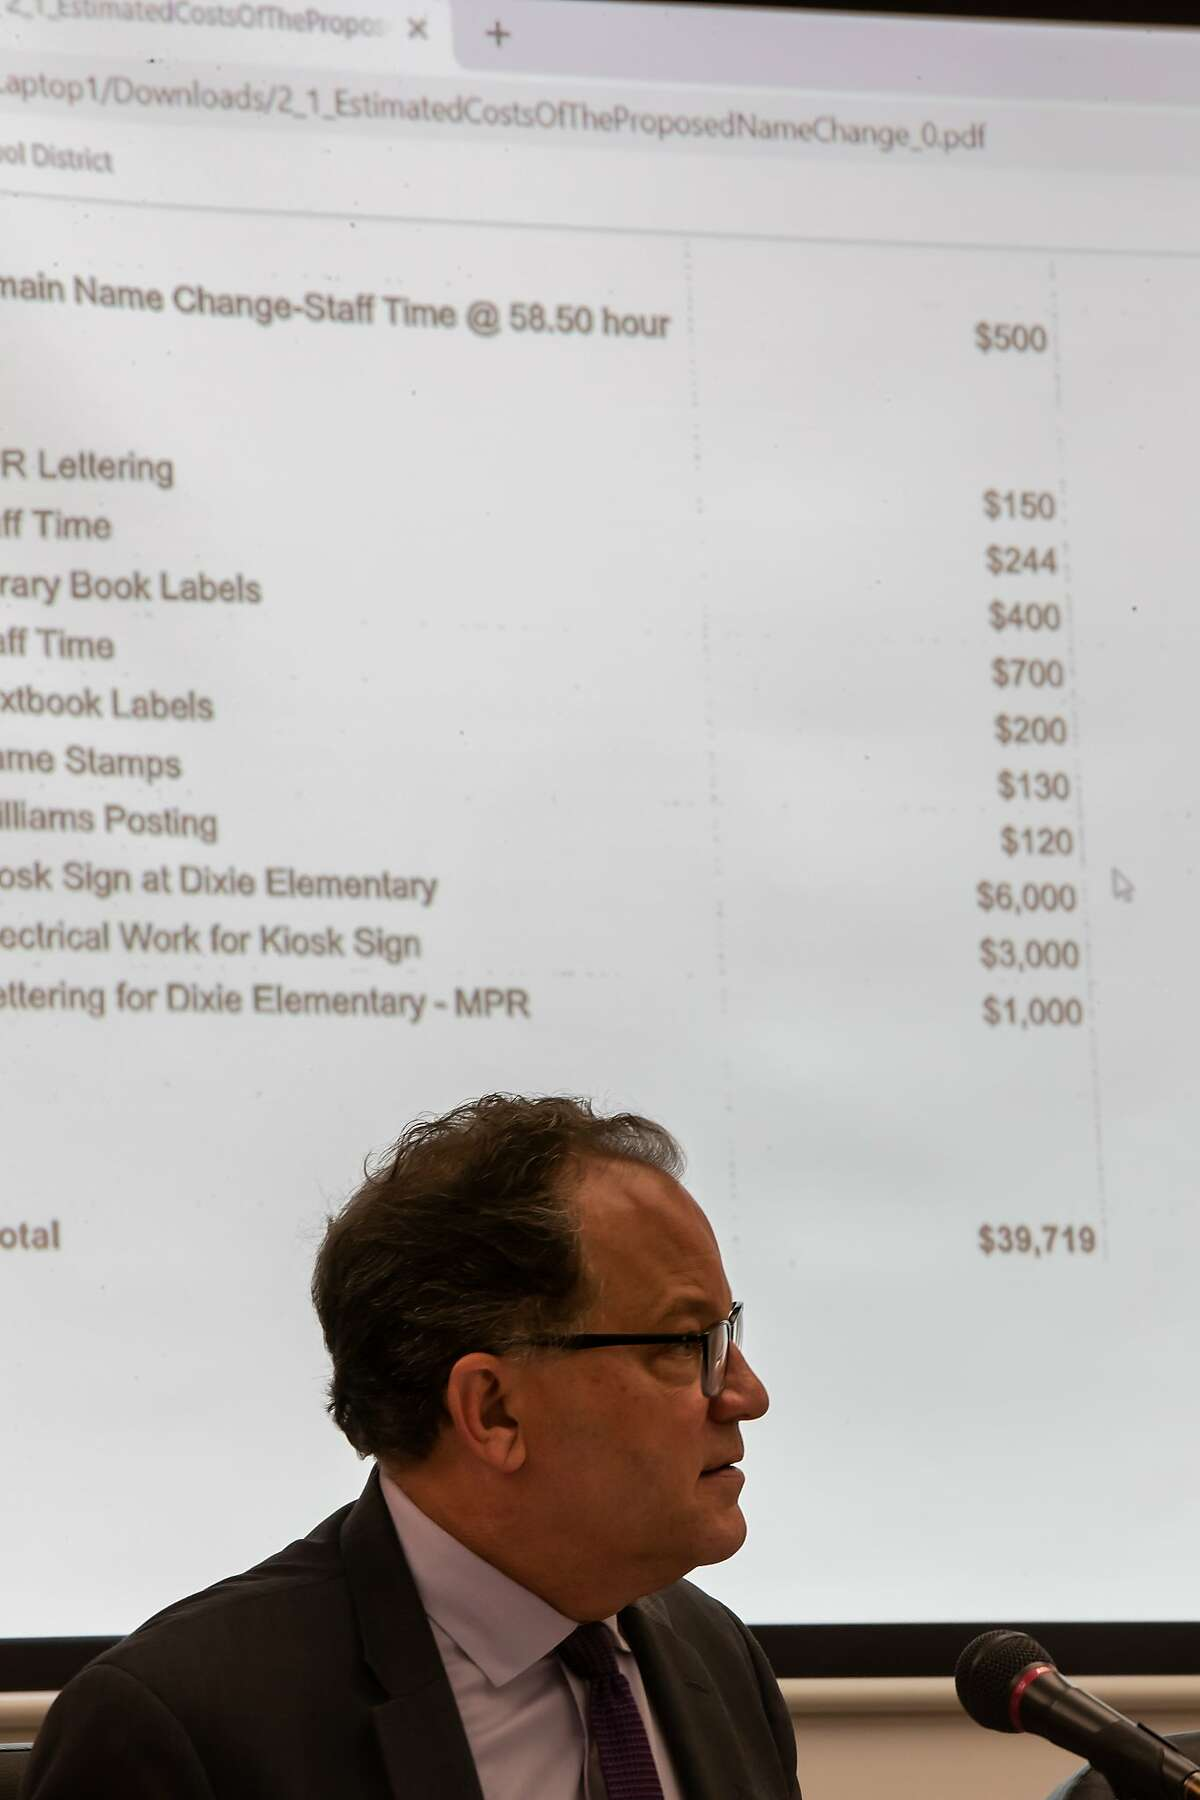 Brad Honsberger, School Board president, discusses the costs of the name change during the Dixie School board meeting on Tuesday, April 16, 2019 in San Rafael, CA.